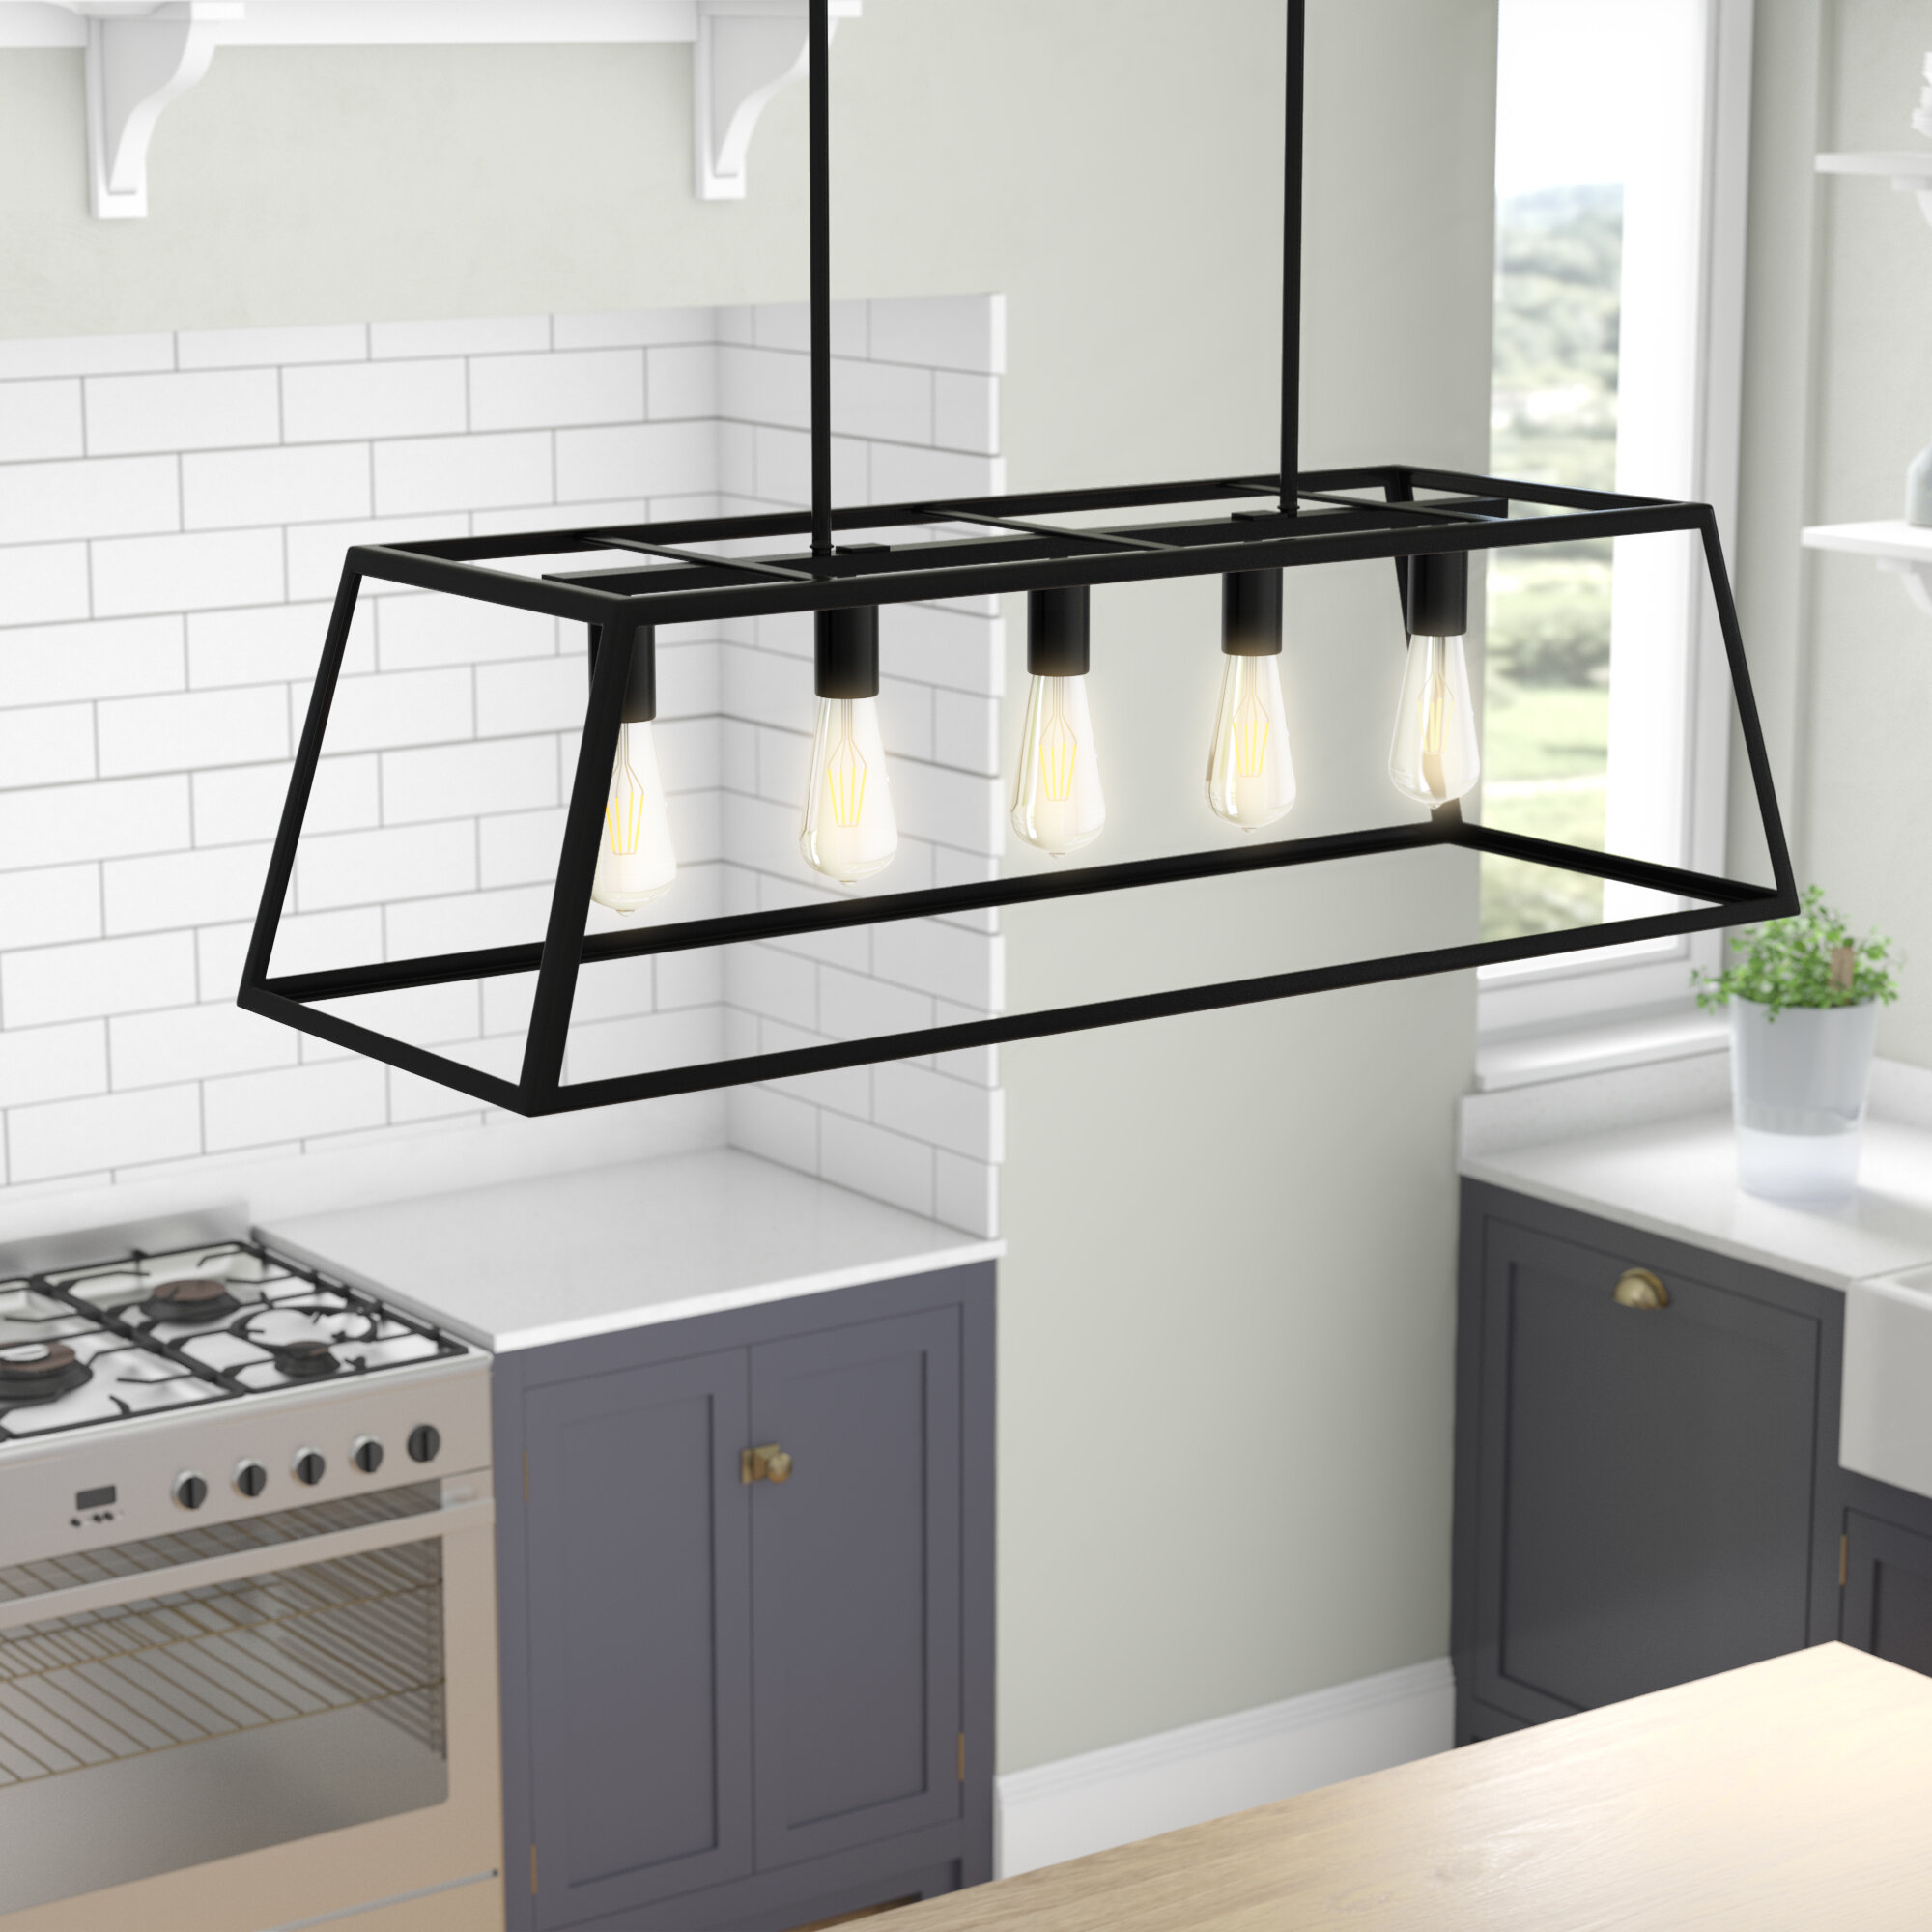 Wayfair & Wicklund 5-Light Kitchen Island Pendant